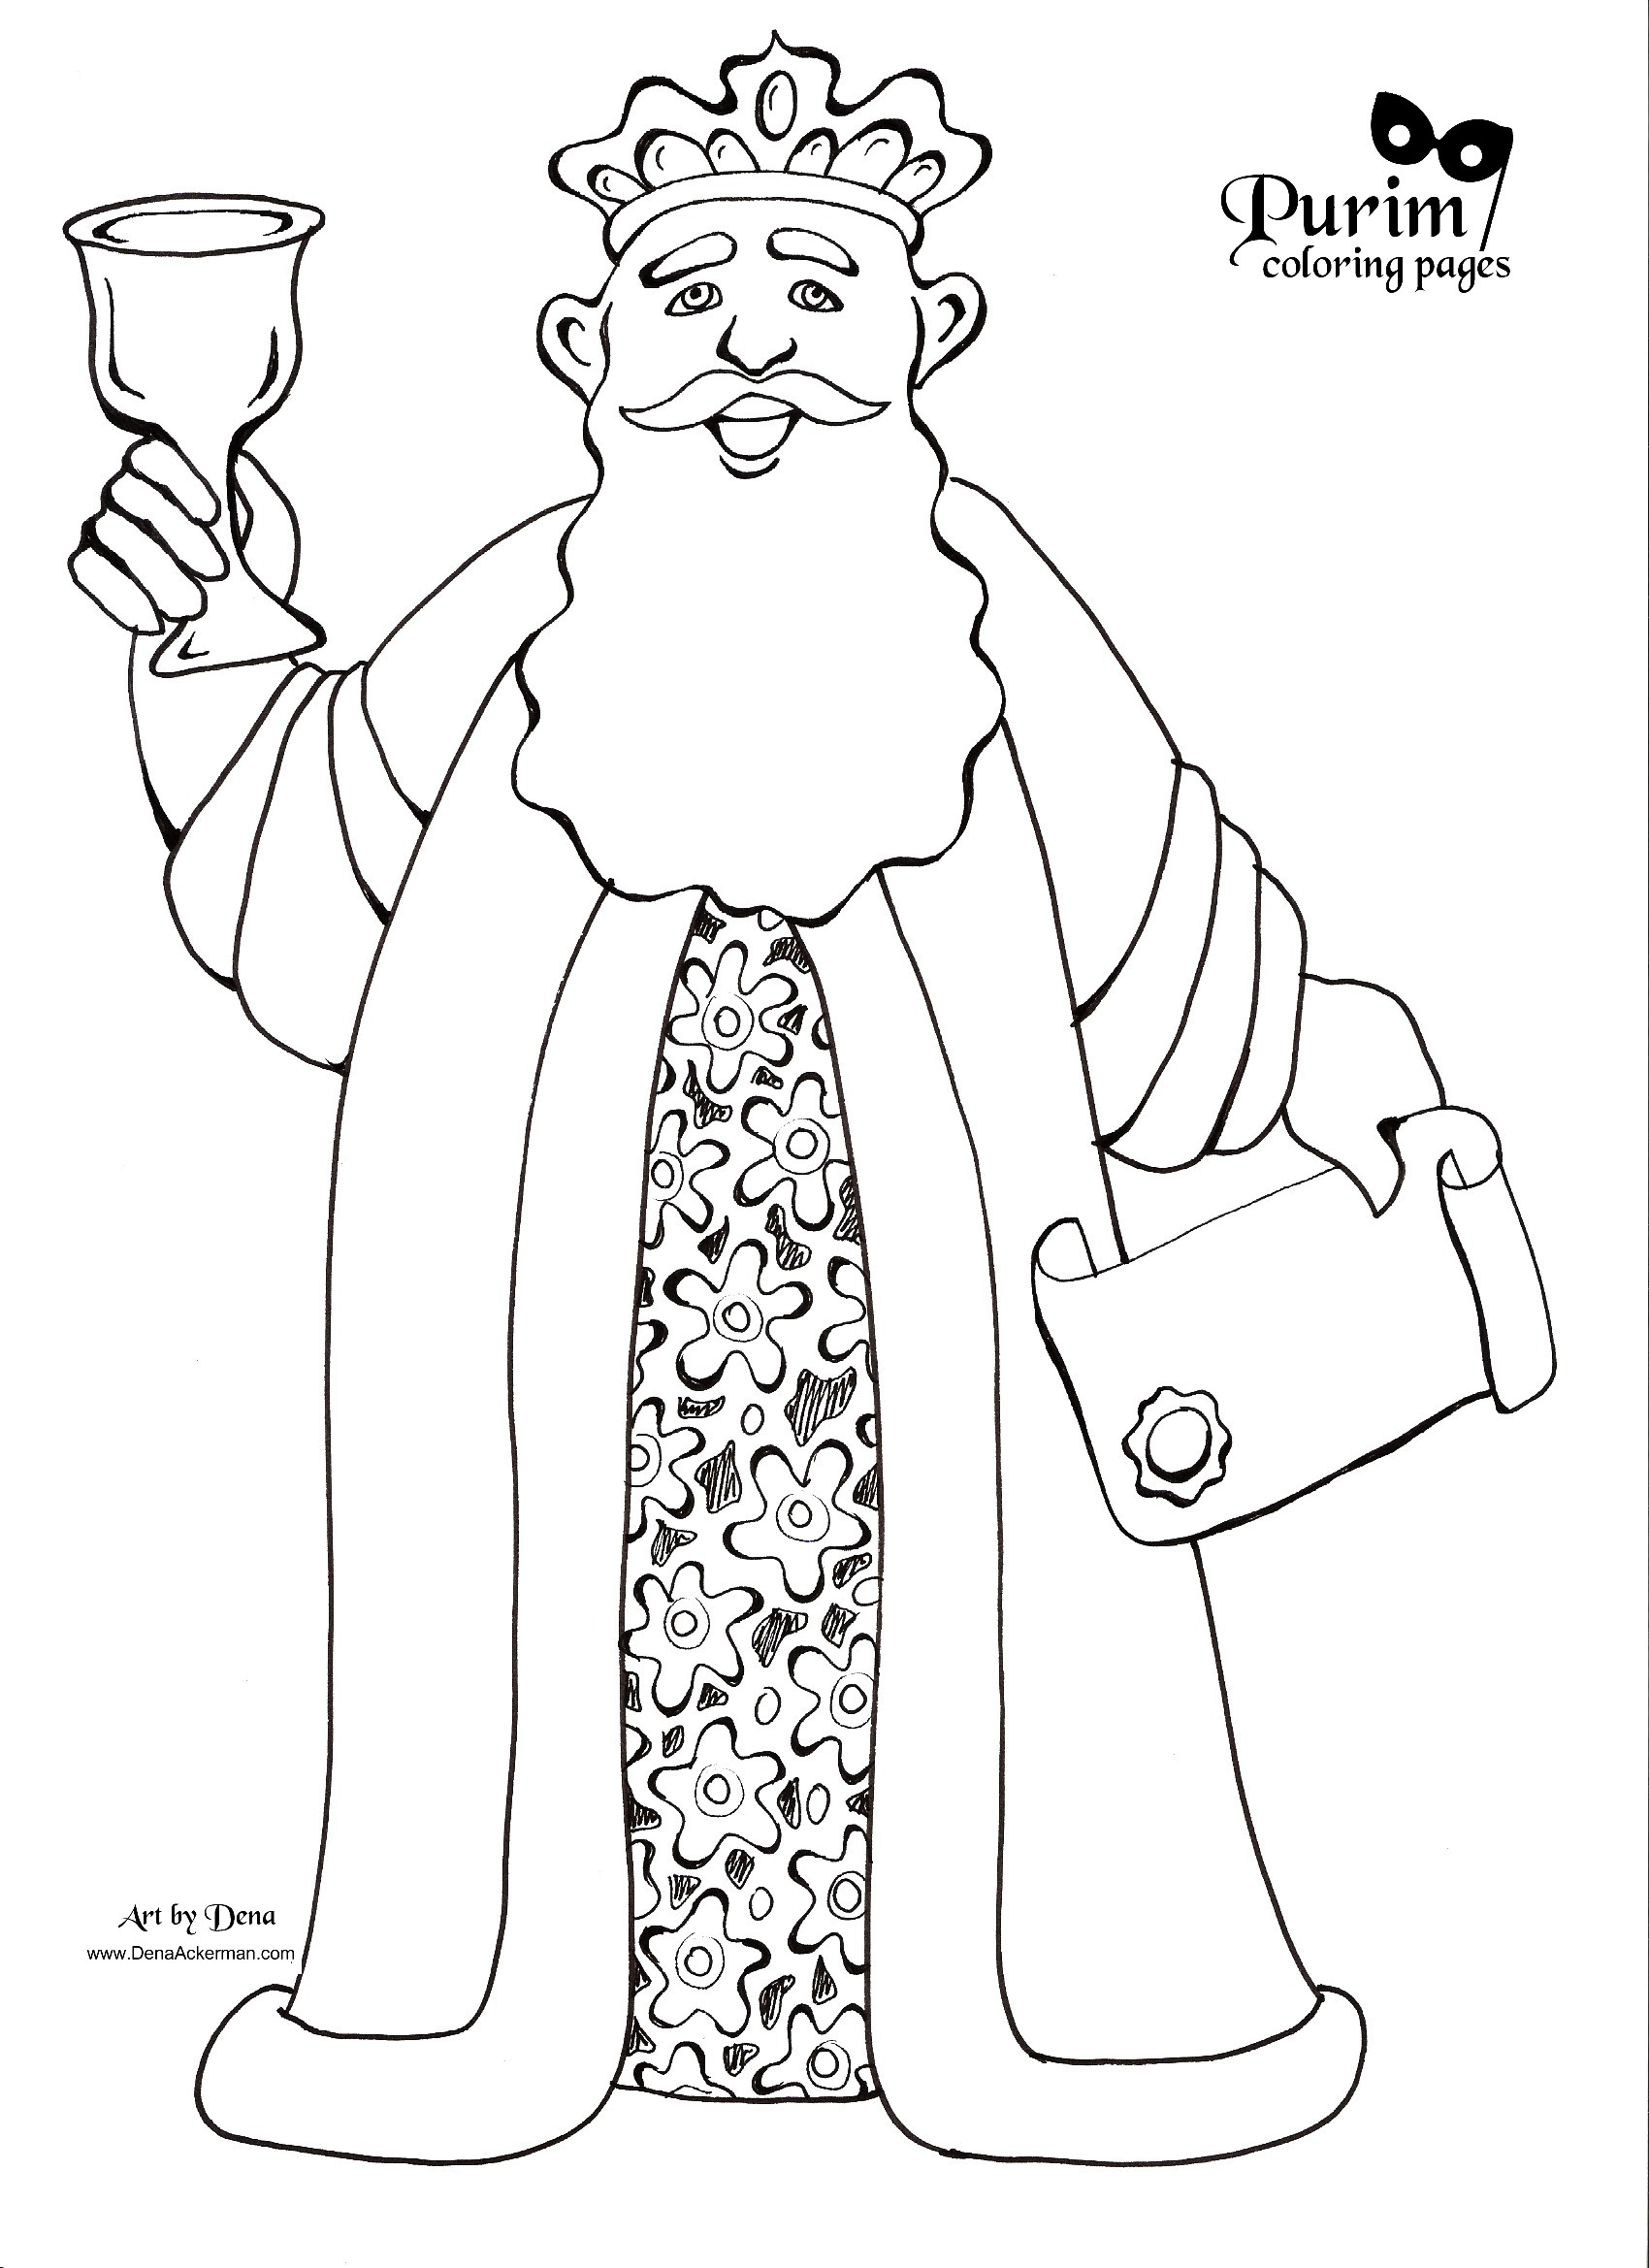 Purim Coloring Pages Unique Purim Coloring Pages  Aol Image Search Results